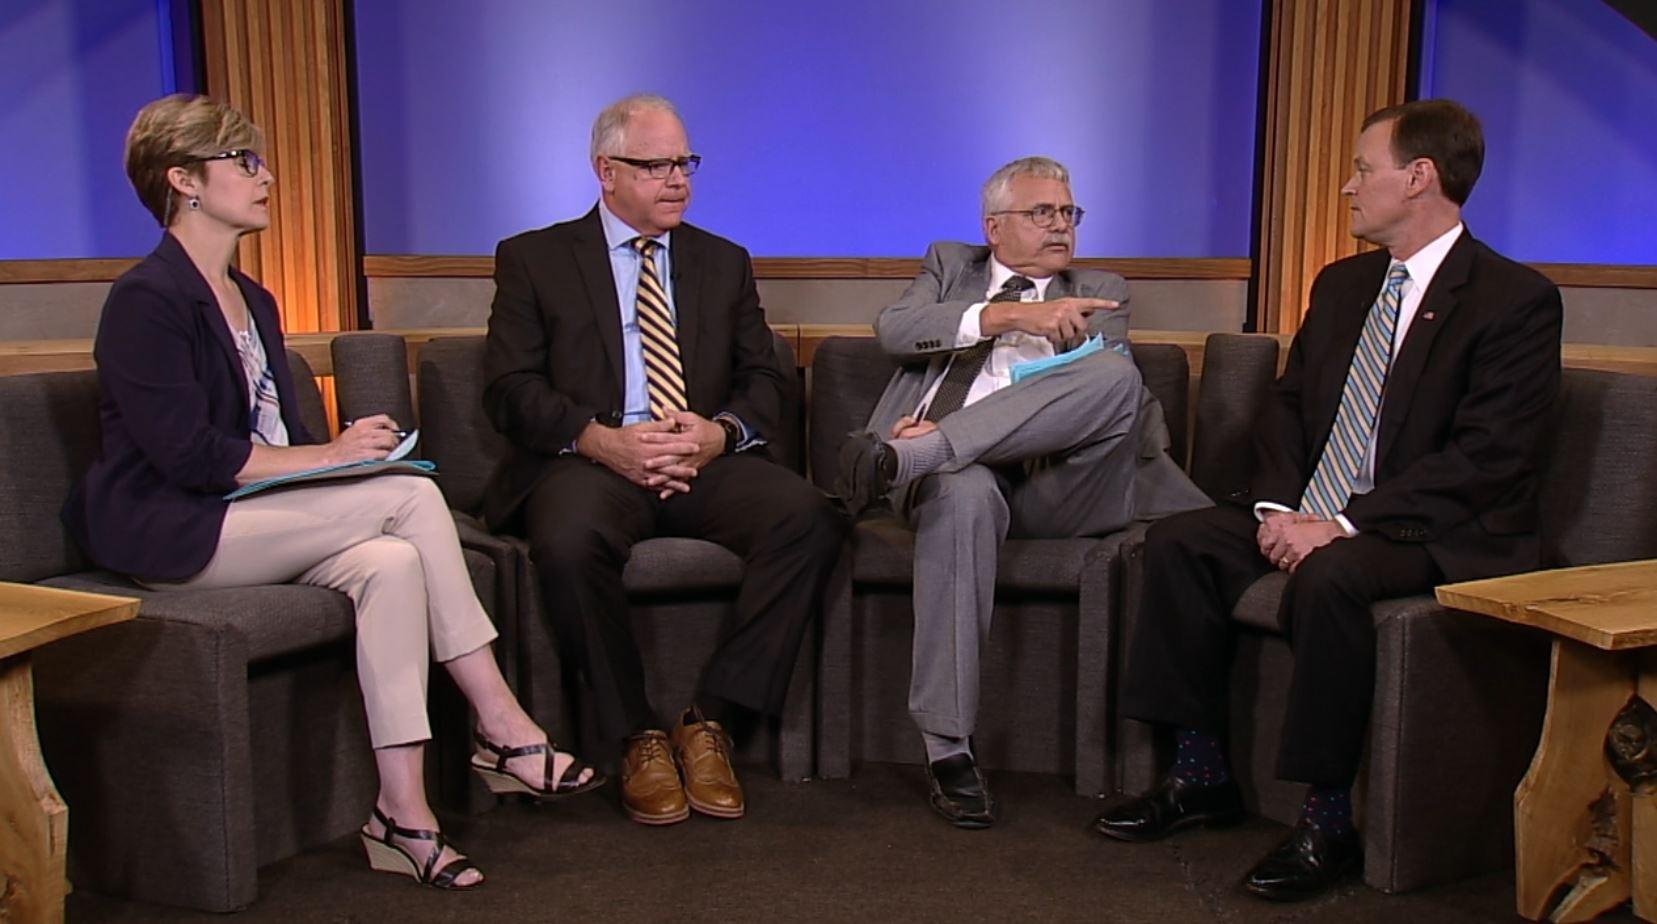 Jeff Johnson + Tim Walz in the first post-primary TV debate